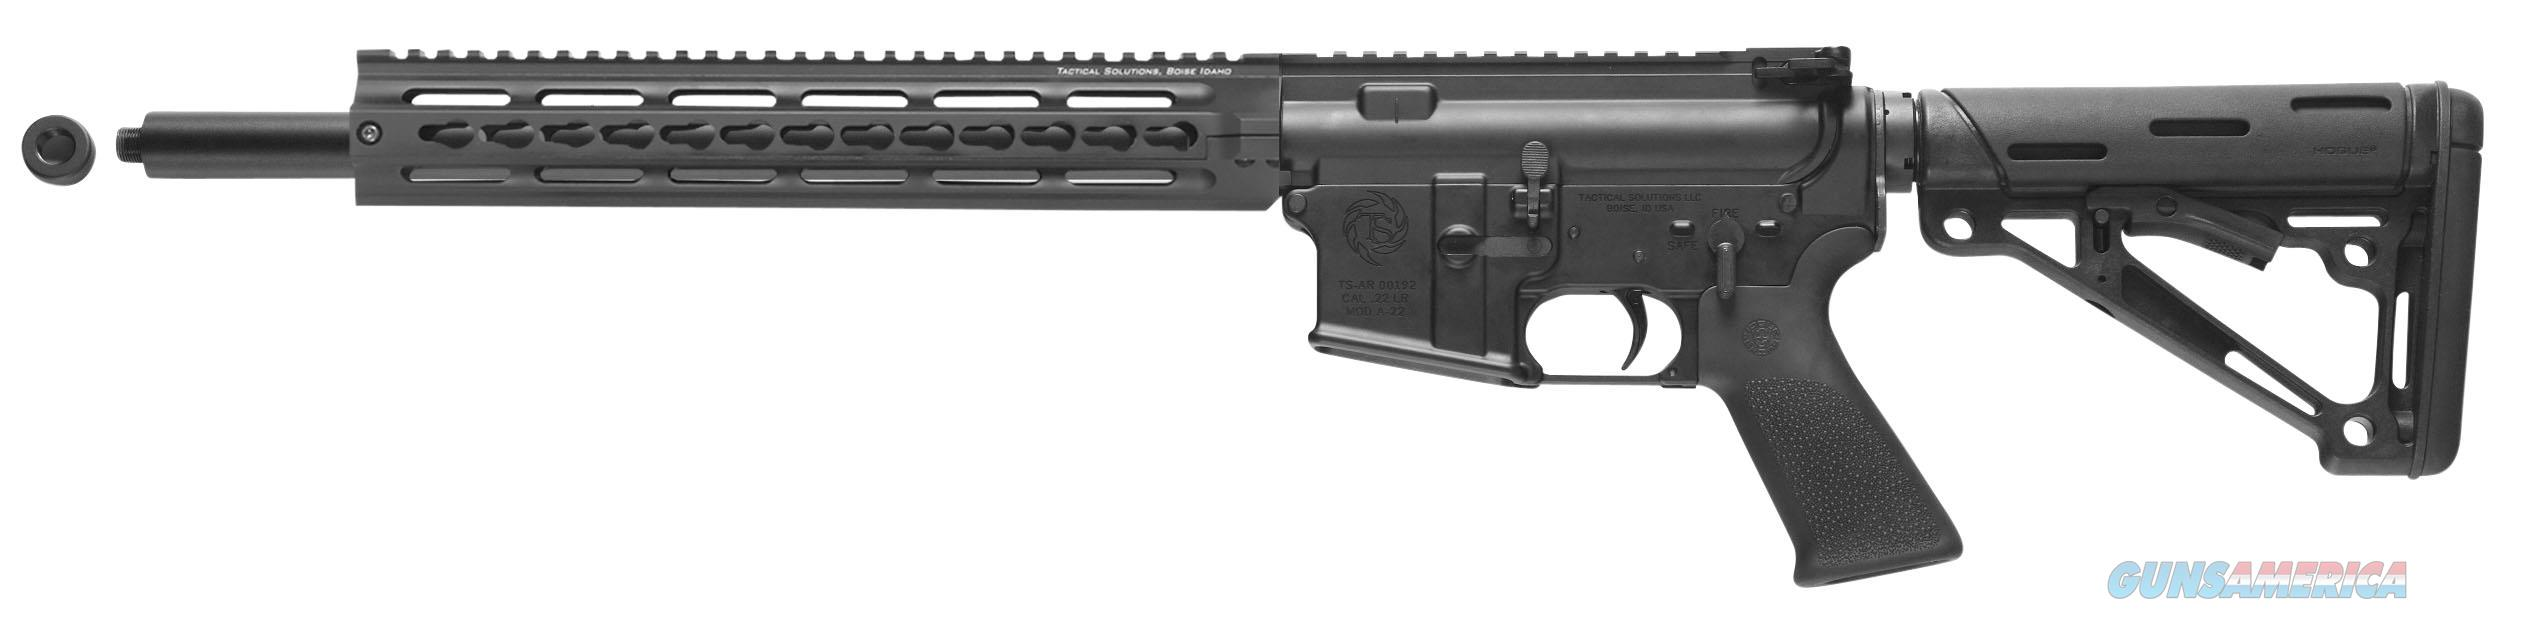 "Tactical Solutions Arcltk Ar-Lt Complete Semi-Automatic 22 Long Rifle 16.5"" 25+1 Collapsible Black Stk Black ARCLTK  Guns > Rifles > TU Misc Rifles"